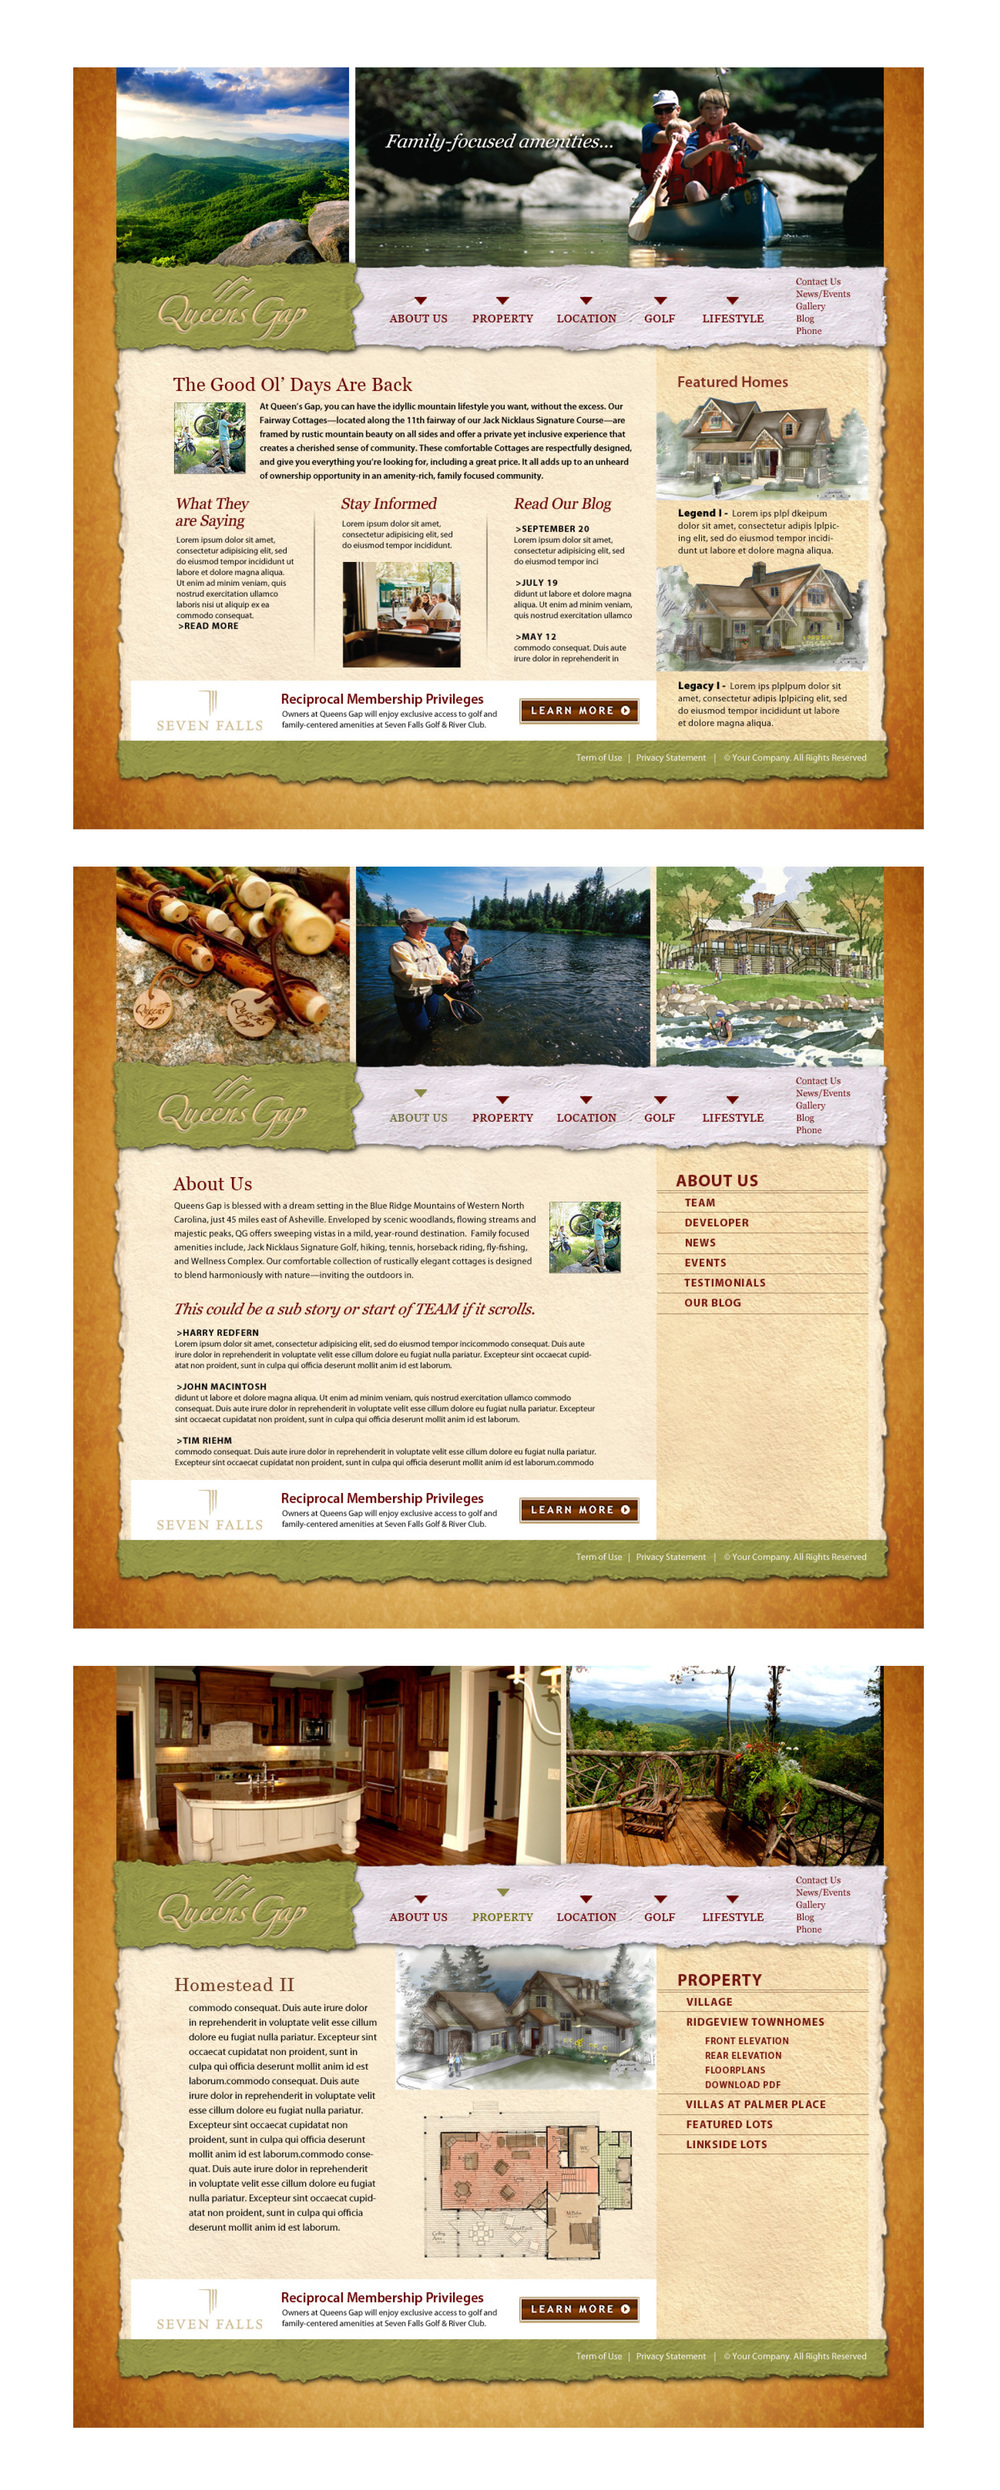 Queen's Gap Mountain Resort Community Web Site